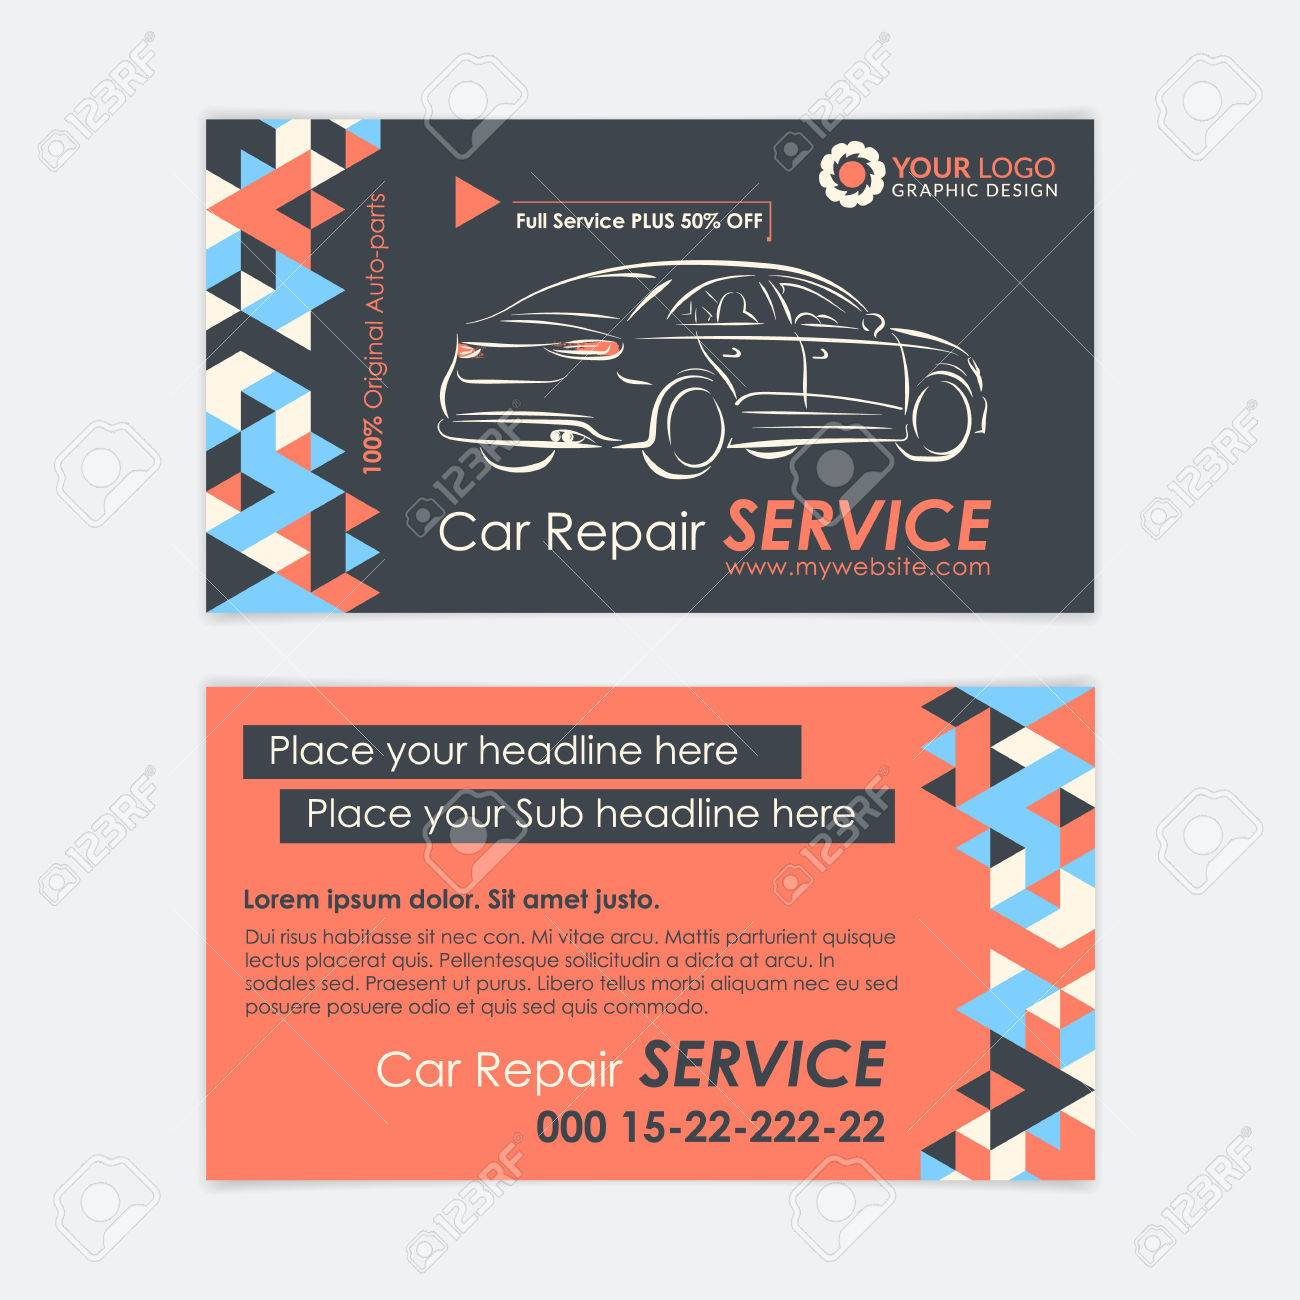 Automotive service business card template car diagnostics and automotive service business card template car diagnostics and transport repair create your own business flashek Image collections